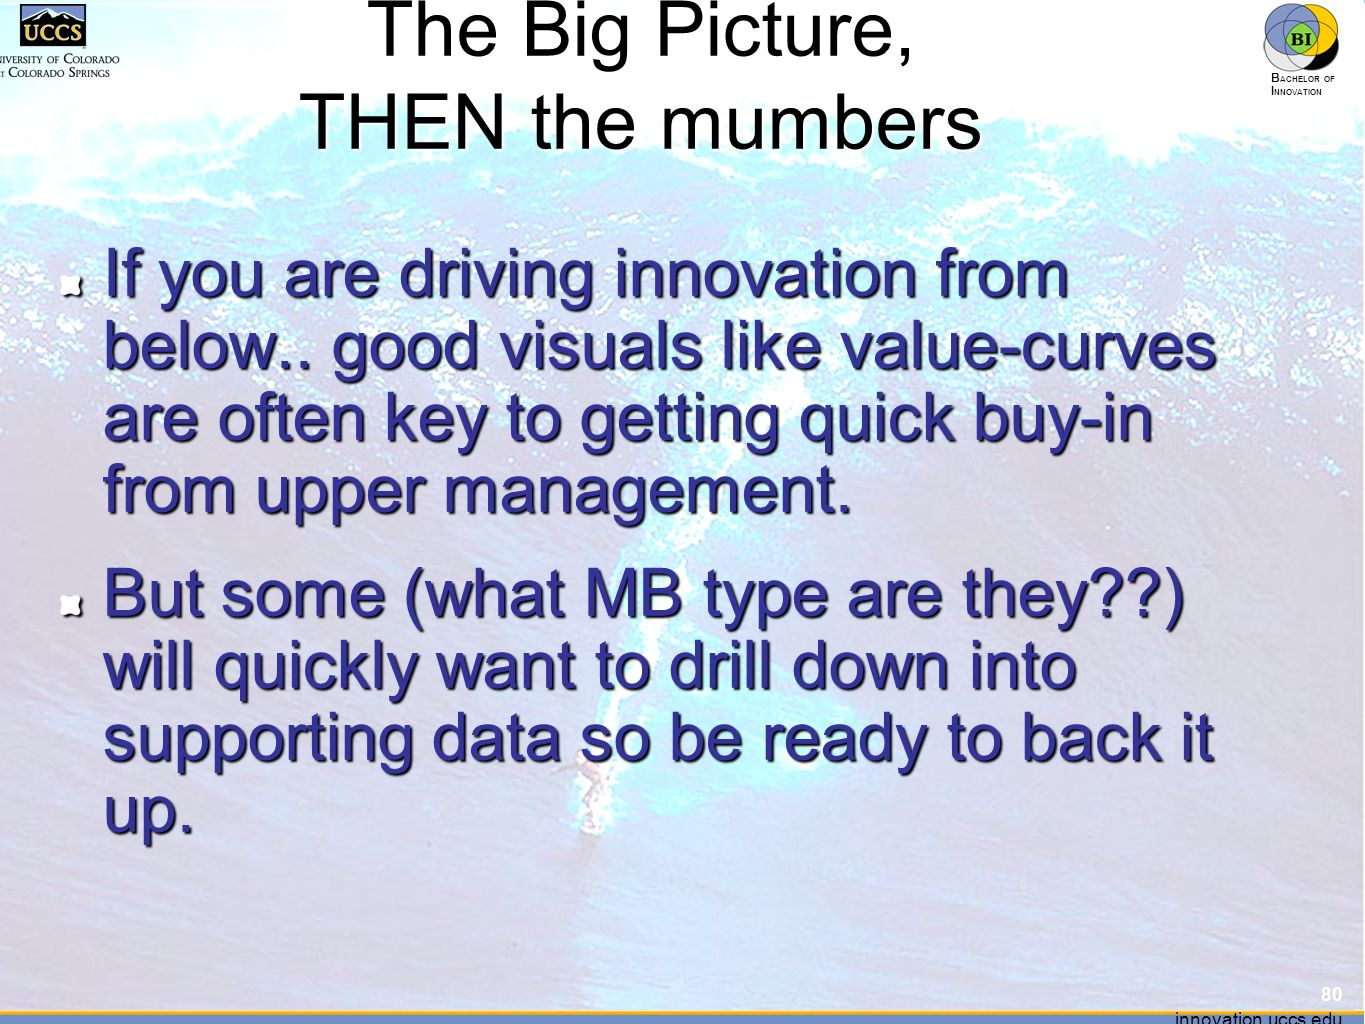 innovation.uccs.edu B ACHELOR OF I NNOVATION ™ innovation.uccs.edu B ACHELOR OF I NNOVATION ™ The Big Picture, THEN the mumbers If you are driving inn